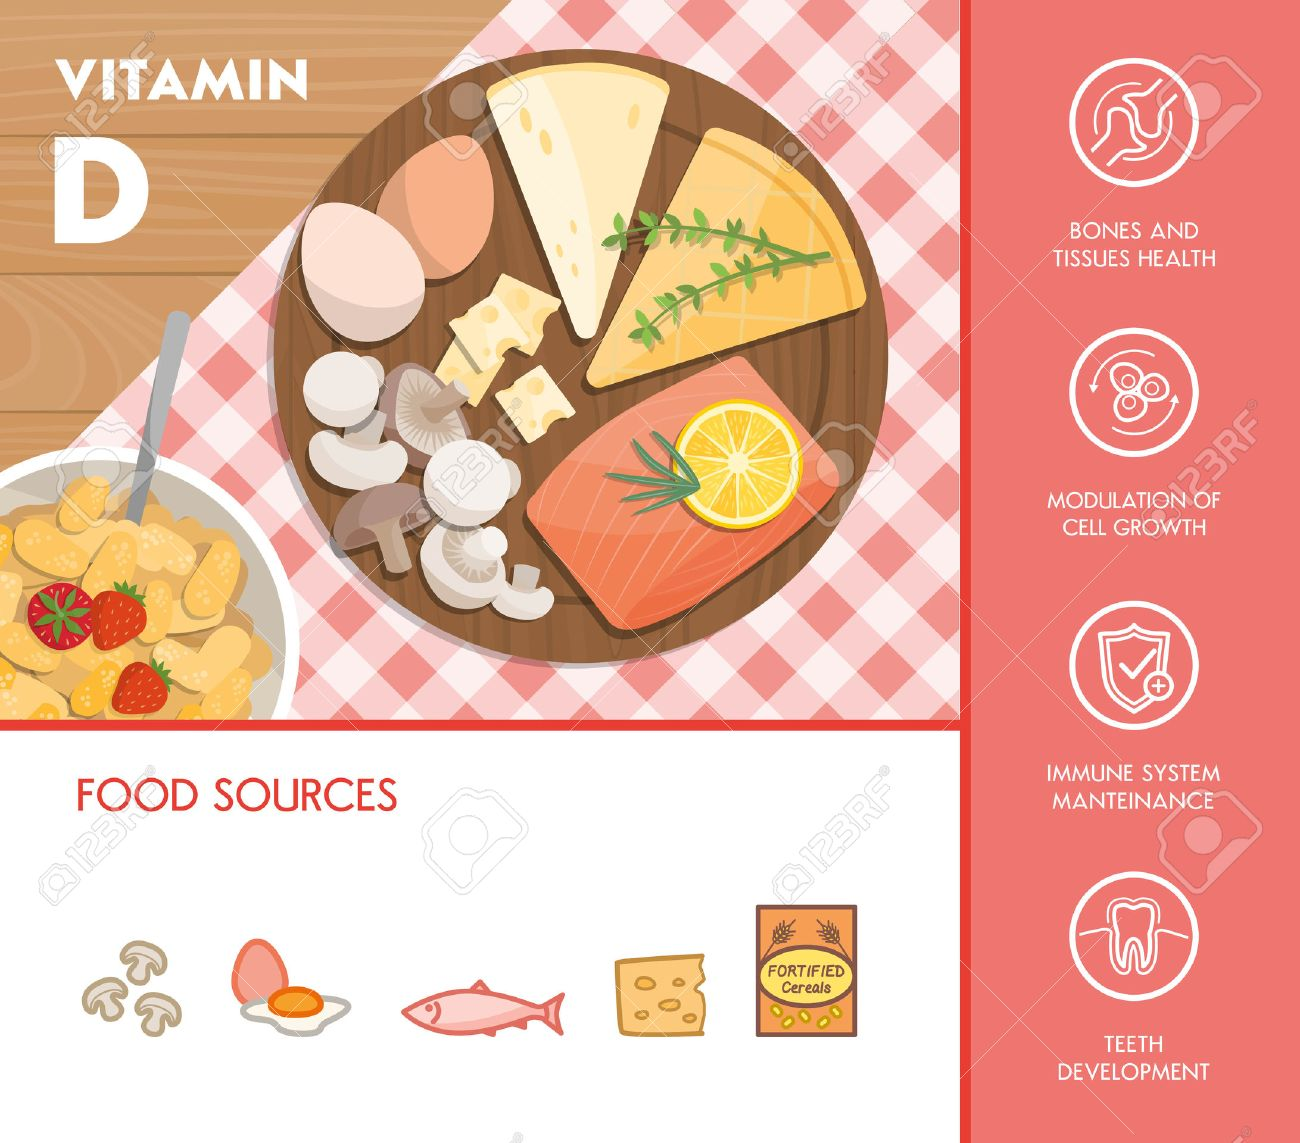 Vitamin D food sources and health benefits, mushrooms, cheese, eggs and salmon on a chopping board - 58290074